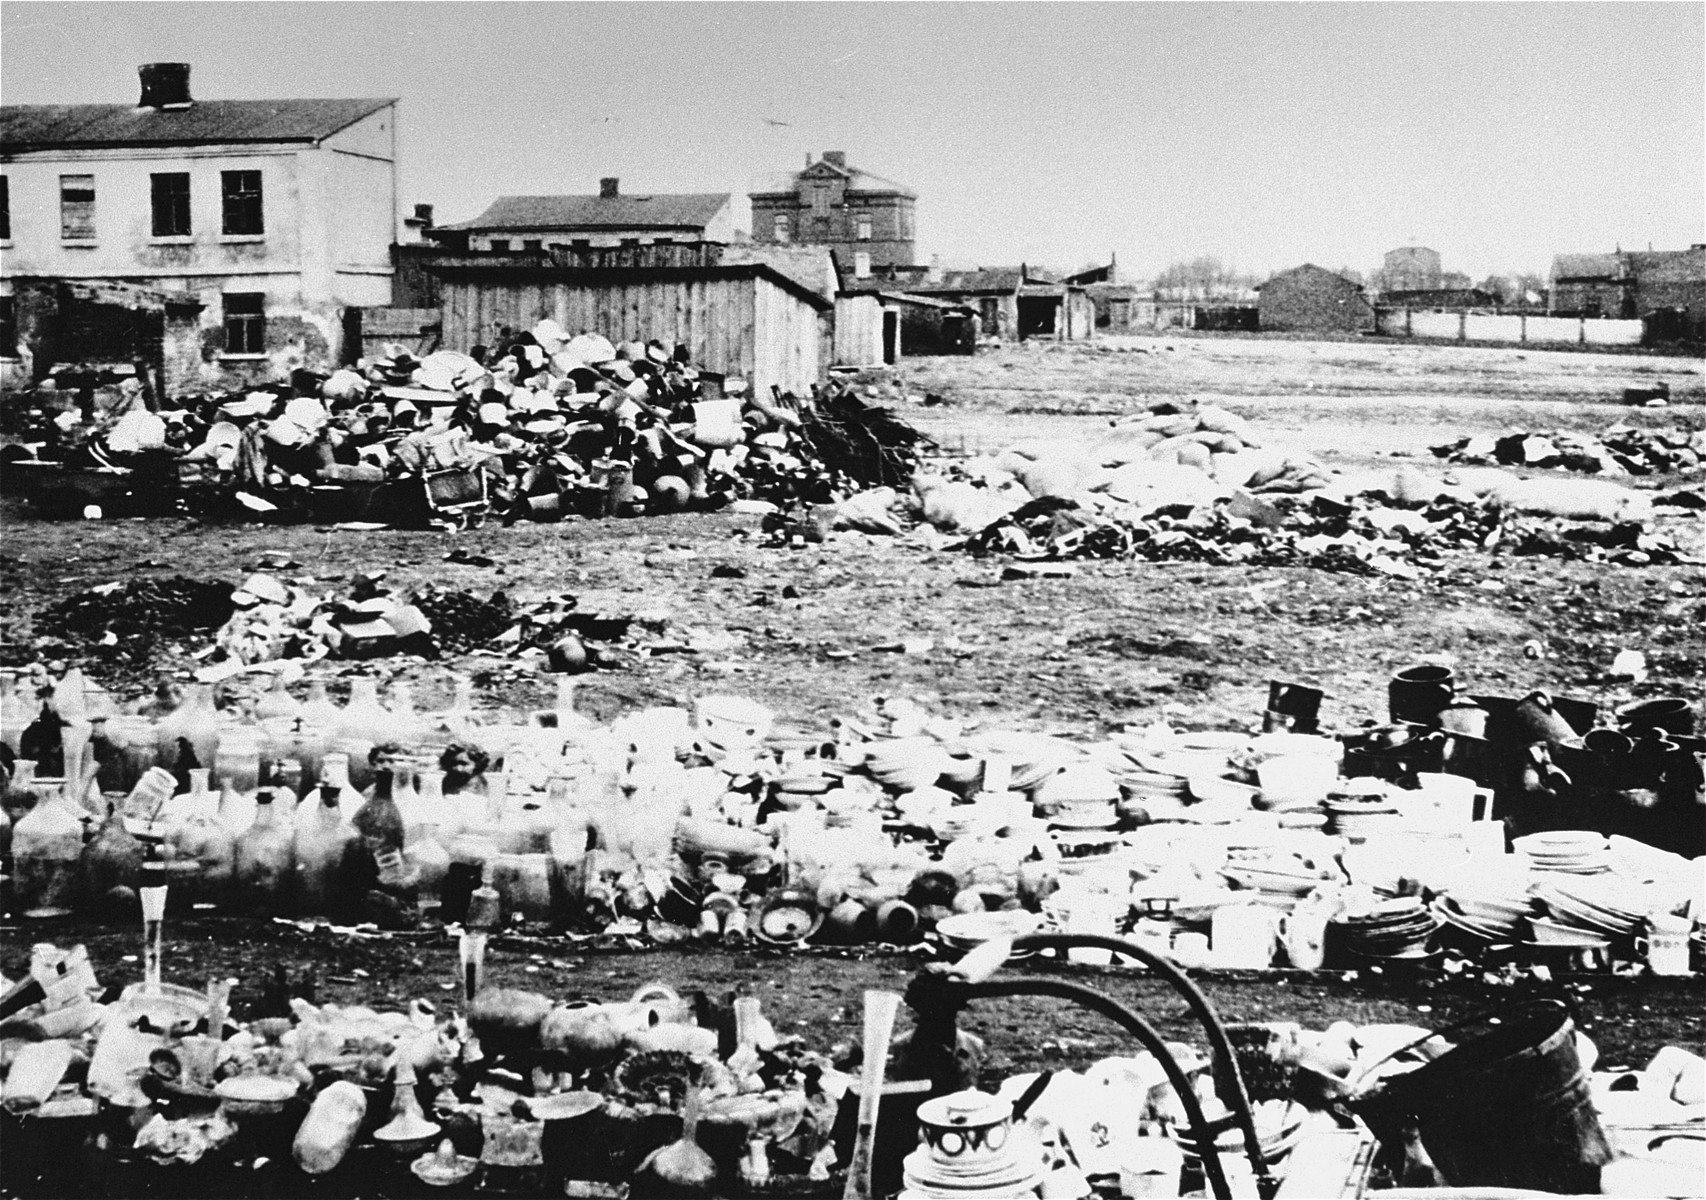 The abandoned property of Jews who have been deported from the Zychlin ghetto is piled in an open field.